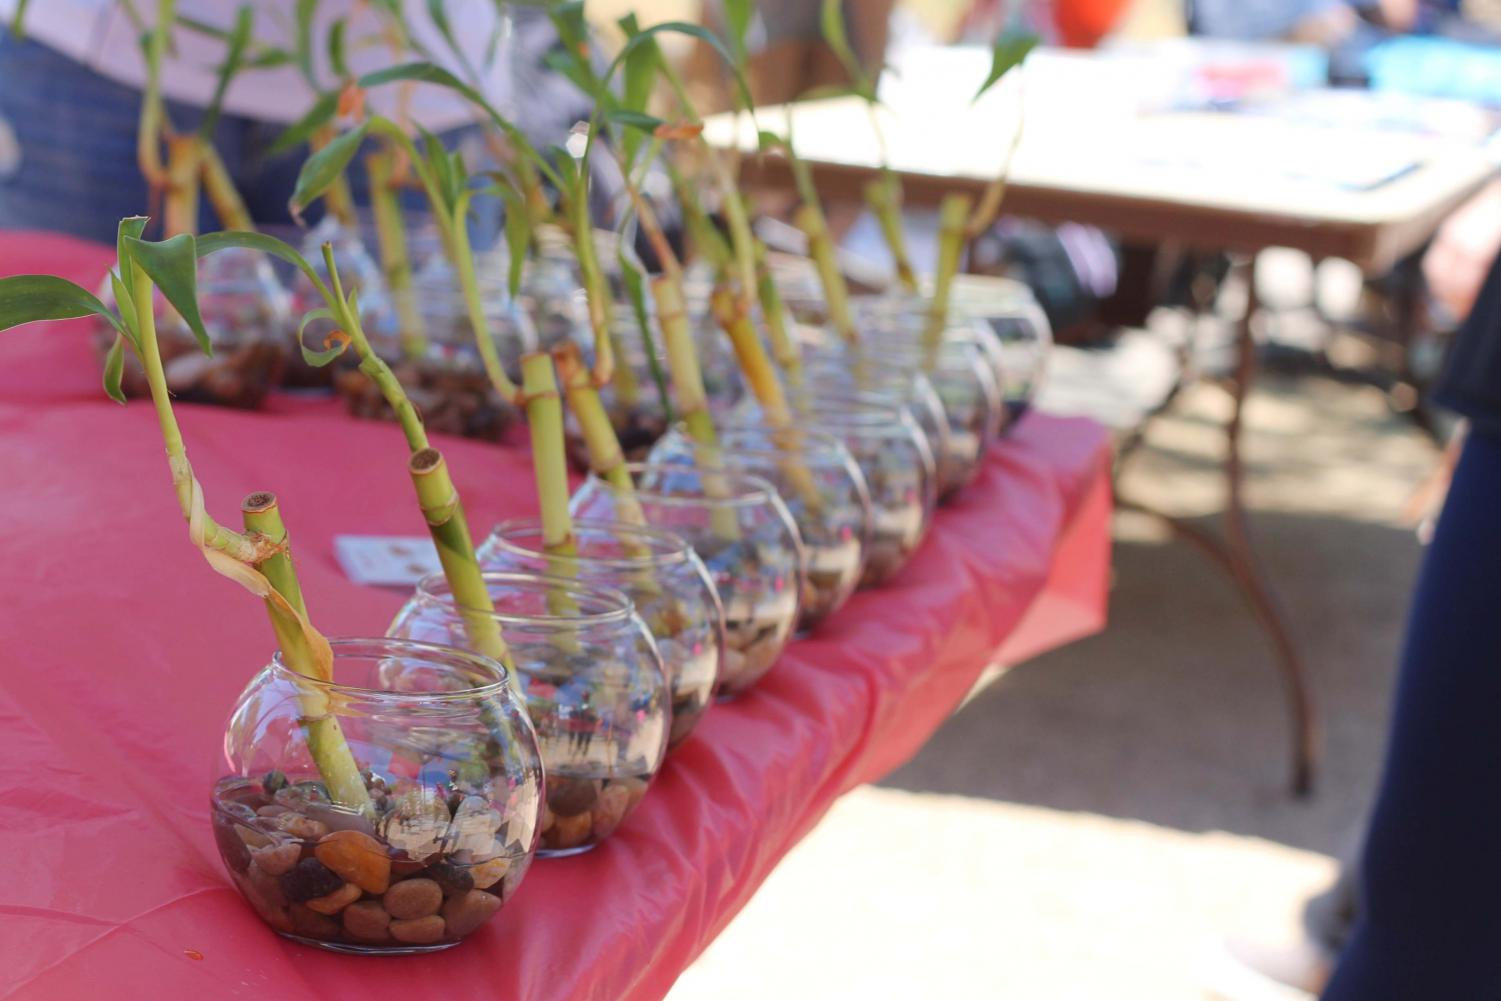 Plant+sale+at+the+celebration+of+UTEP%27s%C2%A0+Student+Government+Association+%28SGA%29+100+years+of+service+at+Centennial+Plaza.